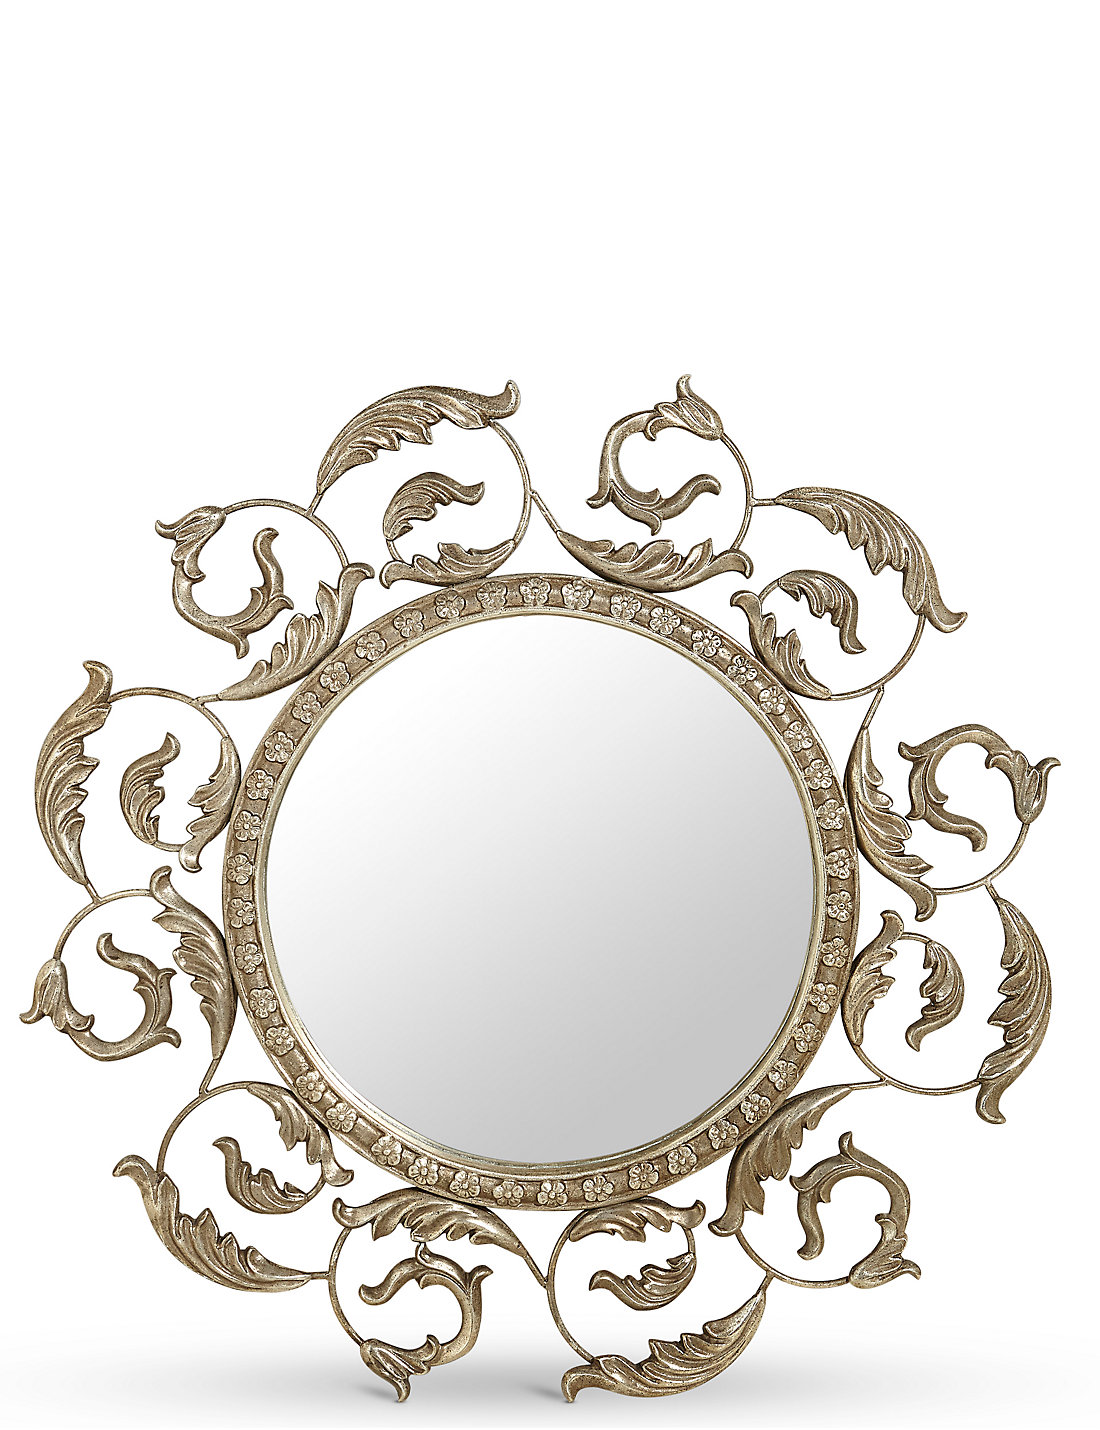 This italian circular wooden wall mirror is no longer available - Trailing Leaves Mirror